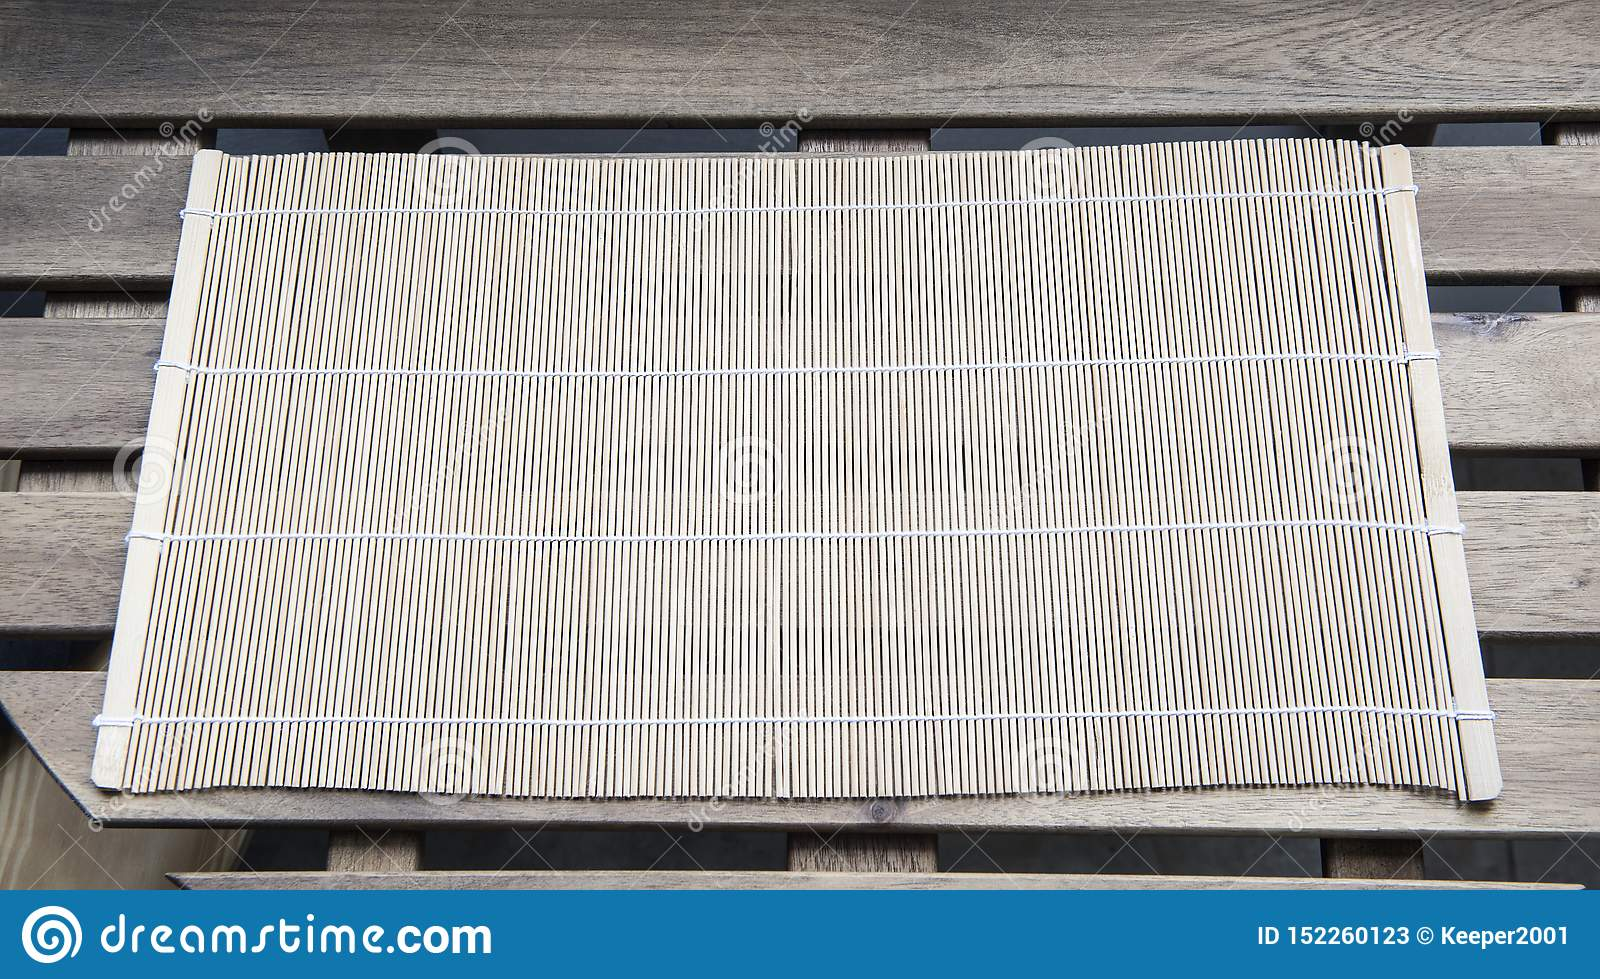 Bamboo mat on a wooden table